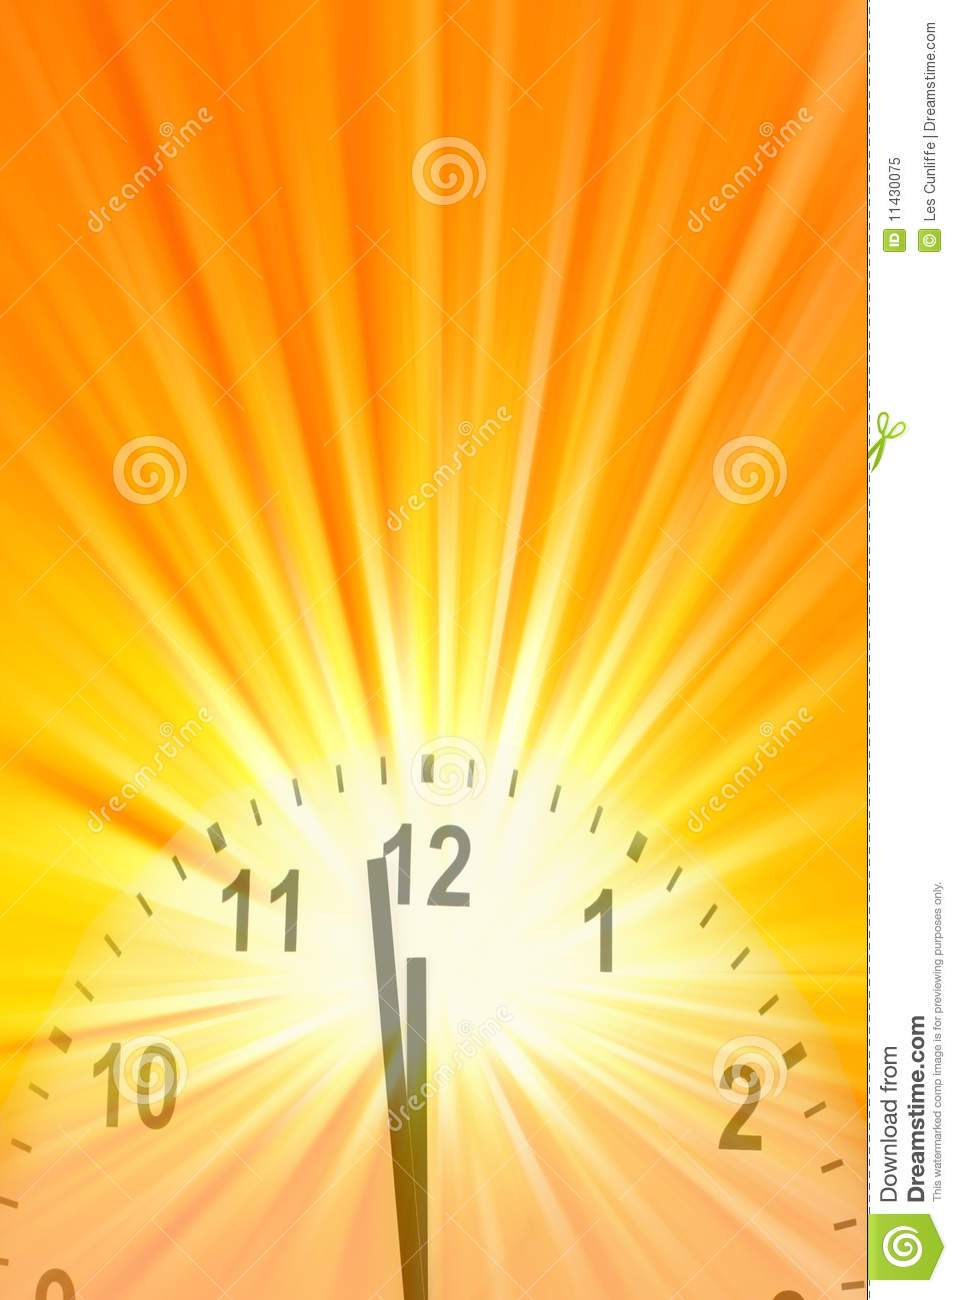 Midday clock stock image. Image of measurement, time ...